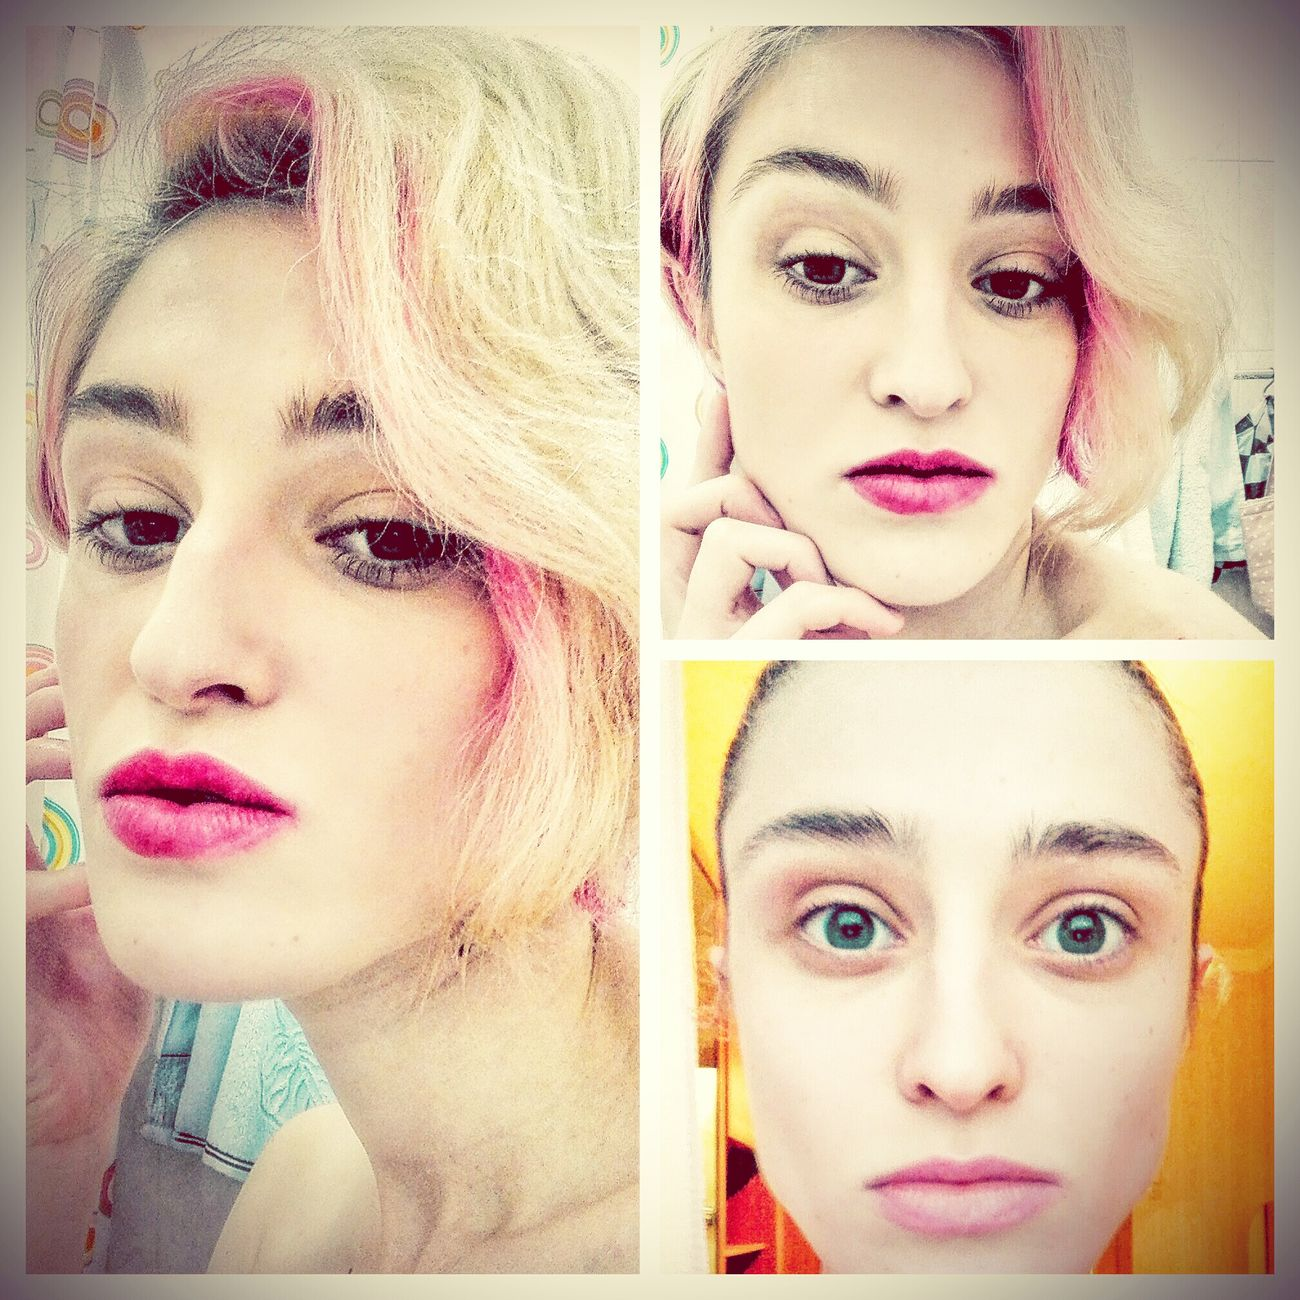 Model Girl Love Before After Makeup Spb_live Rabbit Spb Санкт-Петербург Stupid Redlips Nature Greeneyes ItsMe:) EyeEm Питер Питер ❤️ Home Cute русскаямодель Selfie ✌ Sometimes Change Myself Photo